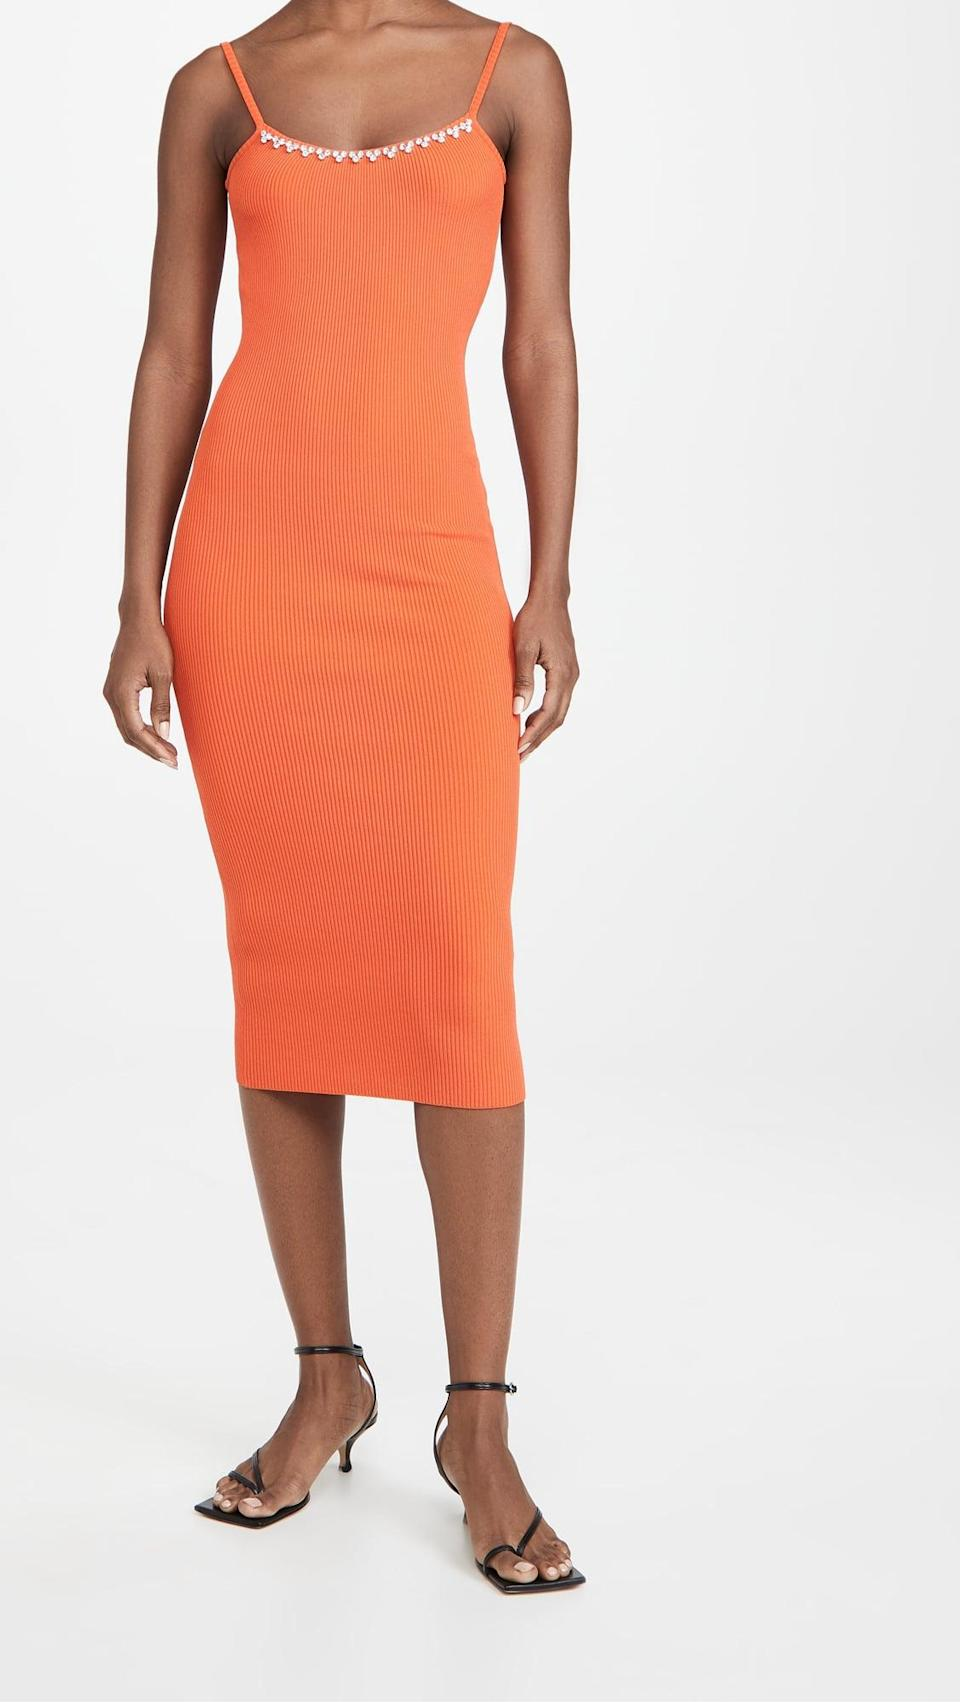 <p>This <span>Area Rib Knit Midi Dress</span> ($272, originally $680) is the kind of head-turning look you'll absolutely make a statement in. We love the pop of color and the fitted yet slightly stretchy silhouette.</p>